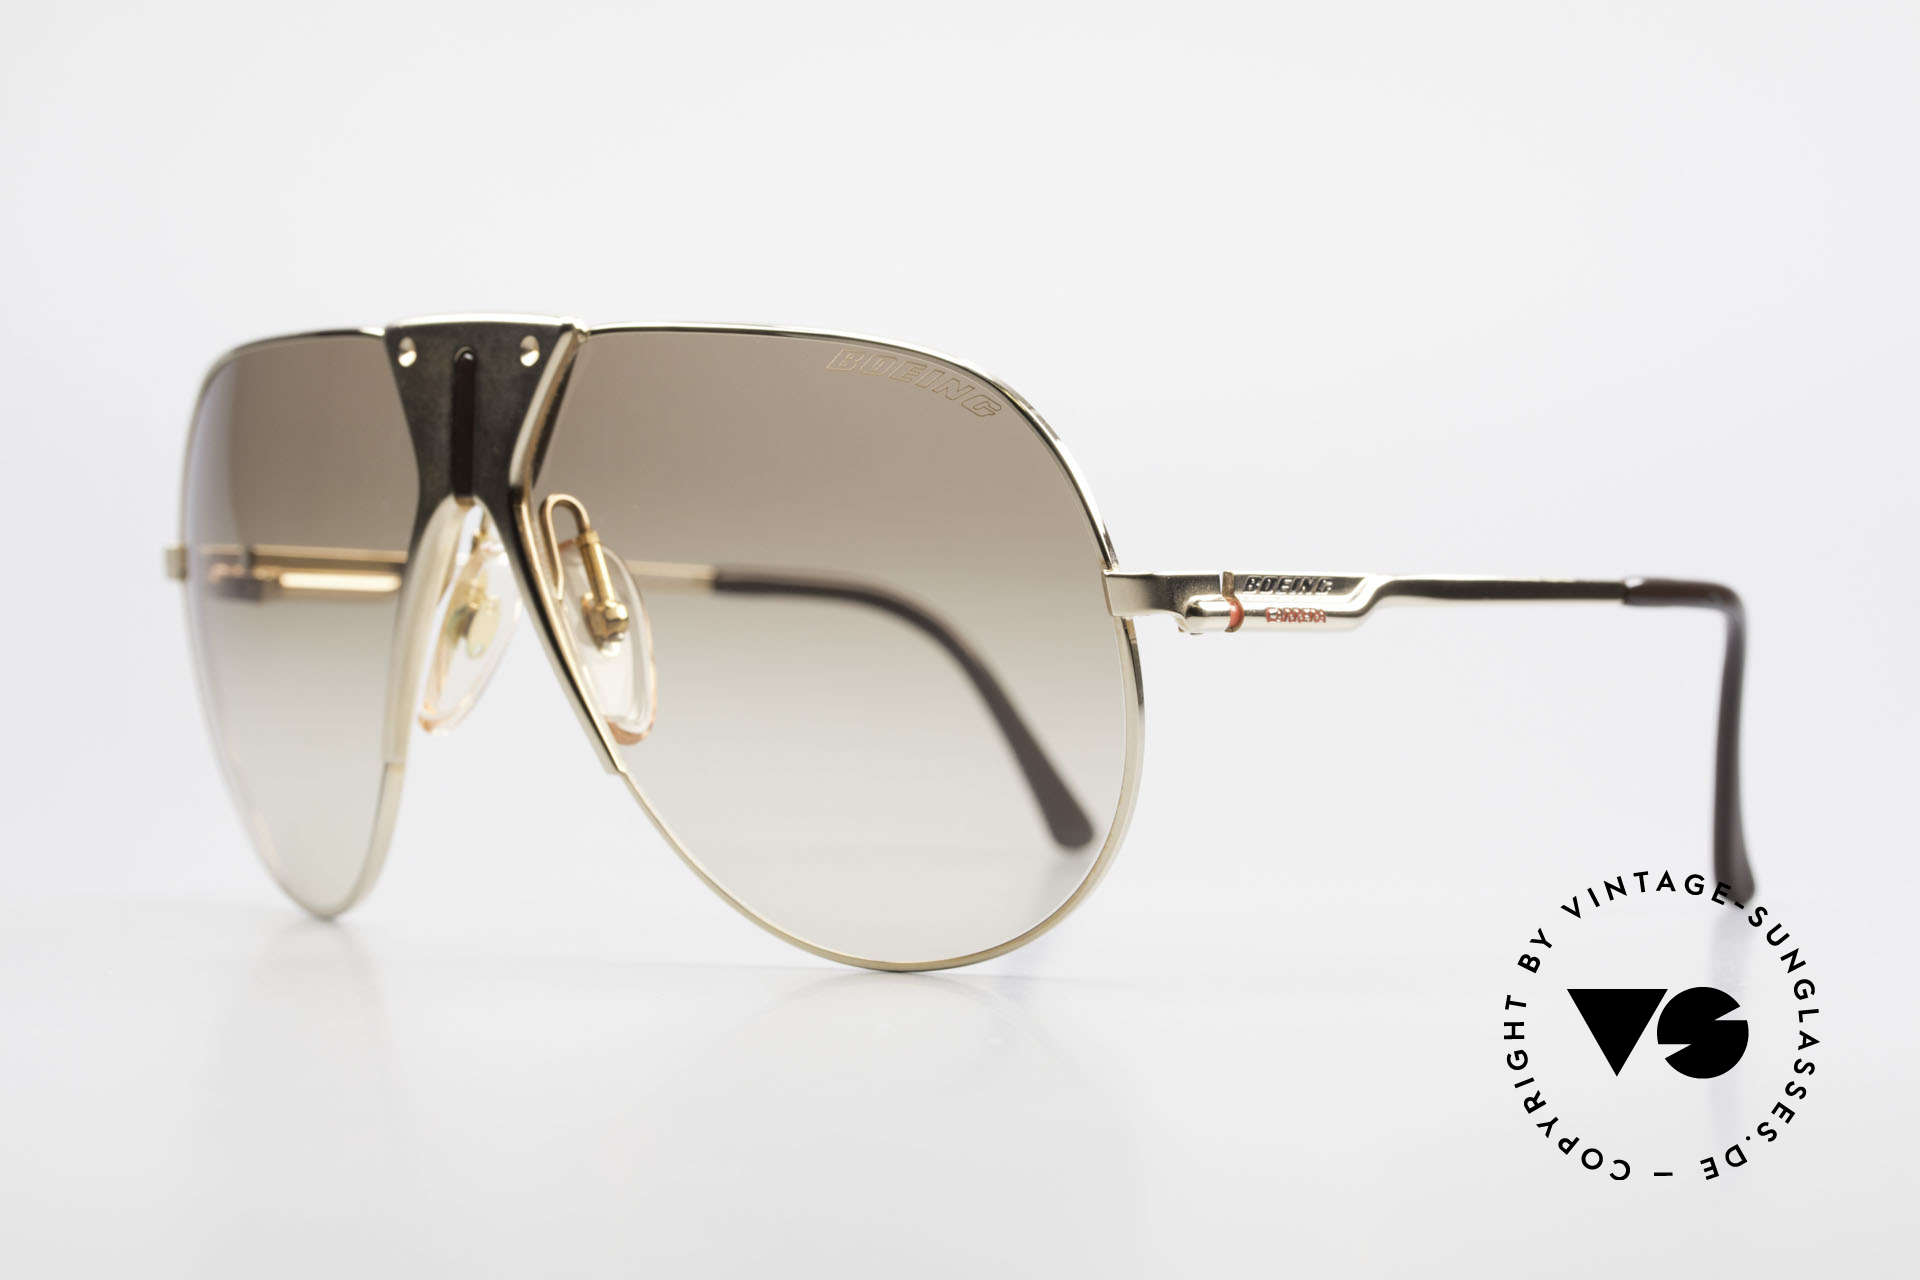 Boeing 5701 Famous 80's Pilots Sunglasses, made by Carrera only for the BOEING pilots needs, Made for Men and Women